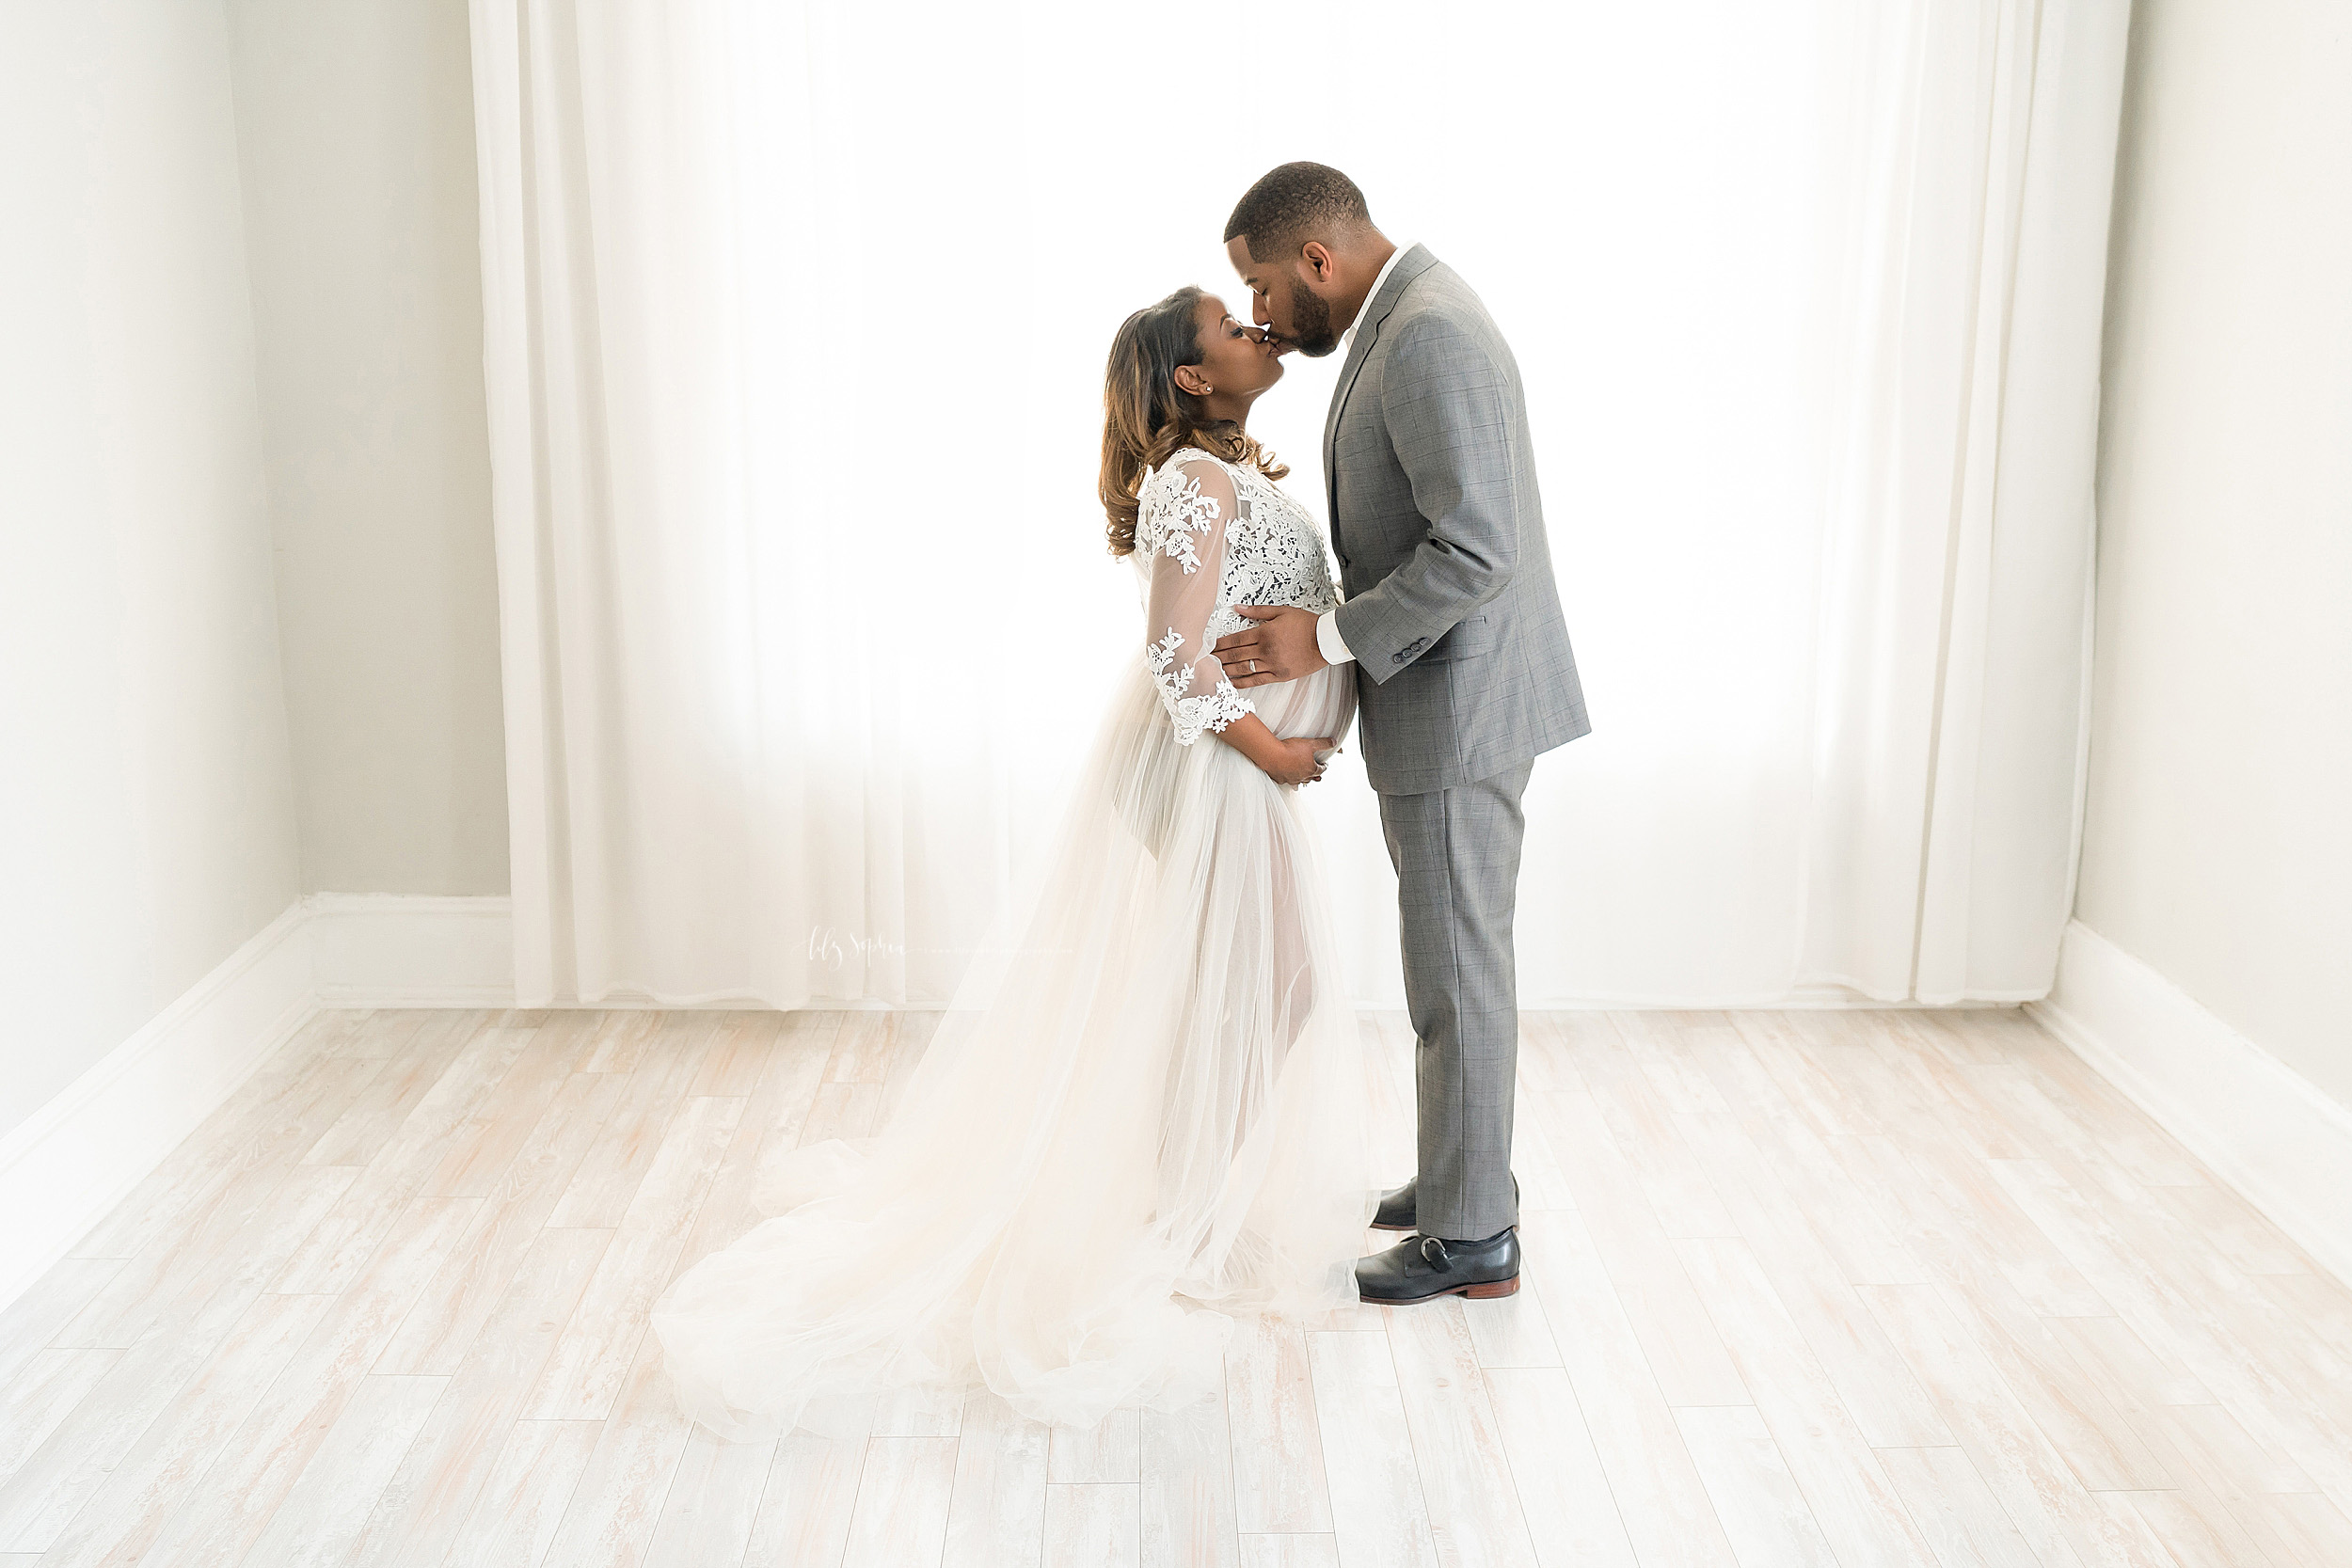 Maternity photo of an African-American couple taken by Lily Sophia Photography in a natural light studio in Atlanta.  The husband and wife are facing one another.  Mom is framing her belly with her hands as she kisses her husband who is holding her belly at her waist.